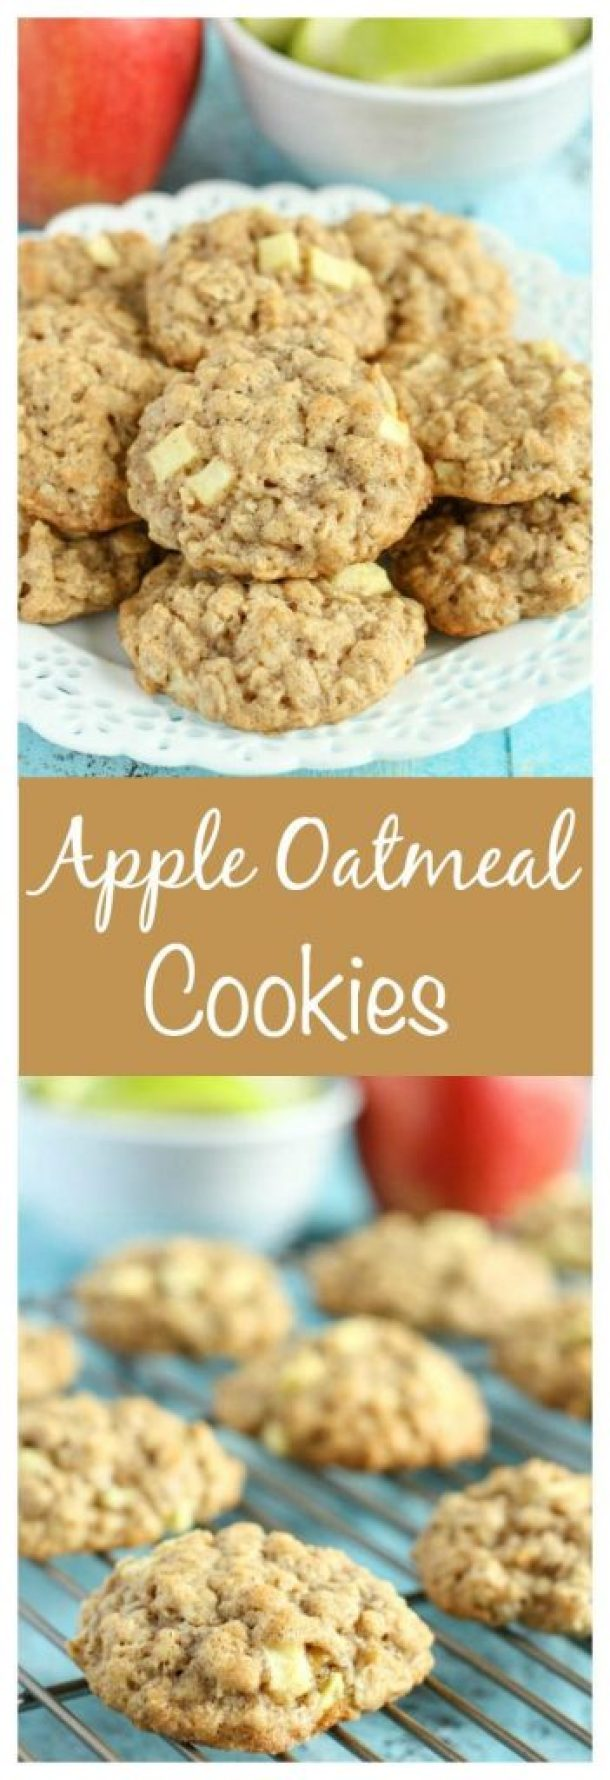 Apple Oatmeal Cookies Recipe | Live Well Bake Often - Apple Recipes